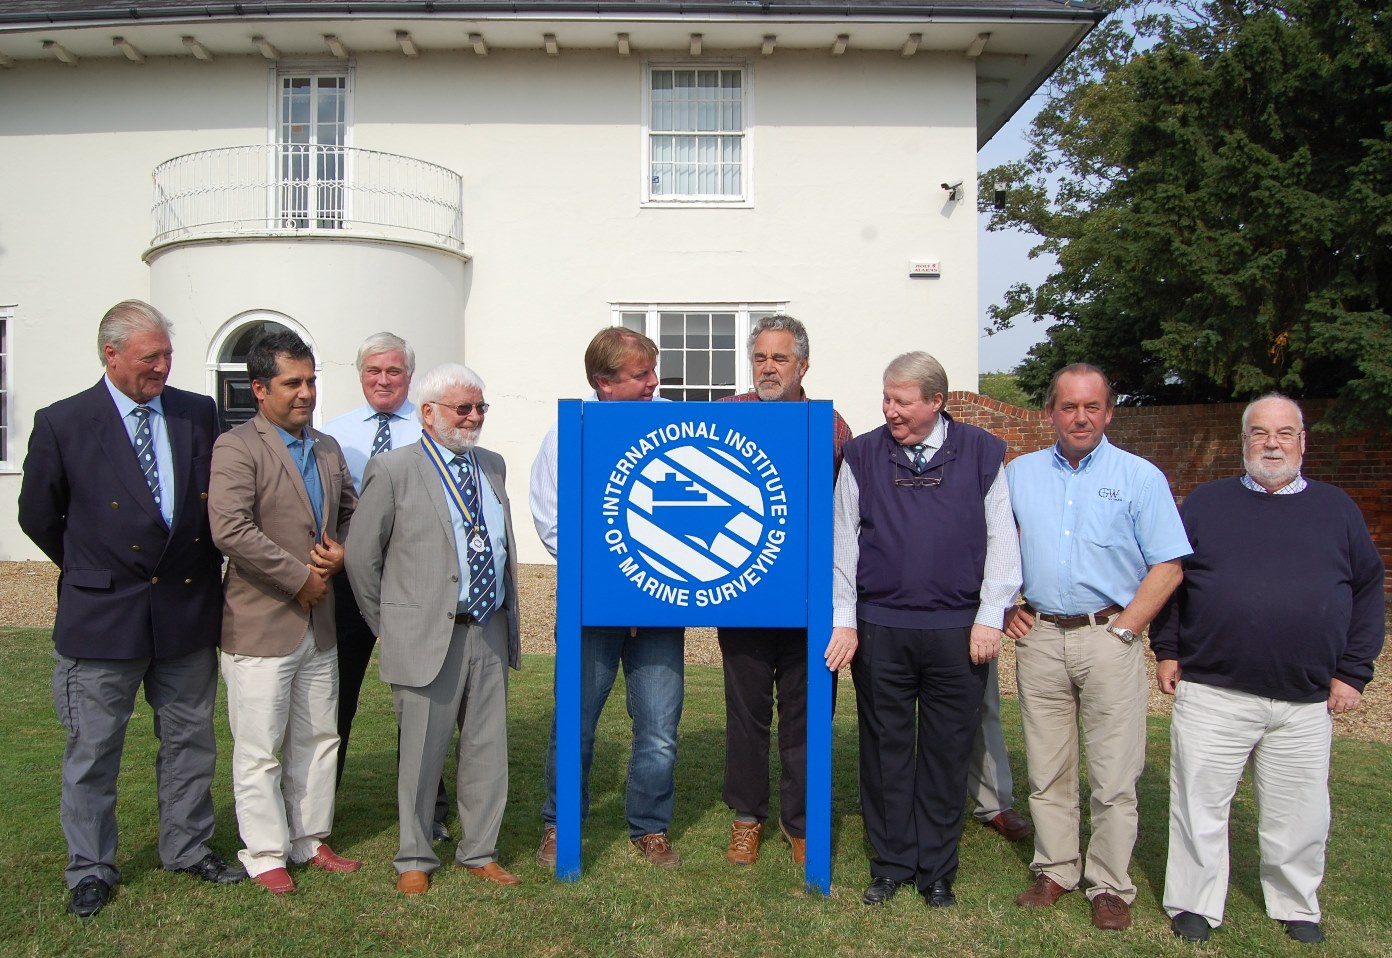 The IIMS management board (from left to right) Paul Homer, Zarir Irani, Chris Kelly, Bertrand Apperry, John Excell, John Heath, Allen Brink, Geoff Waddington and Peter Morgan. Absent Fraser Noble, Adam Brancher and Paul Townsend.